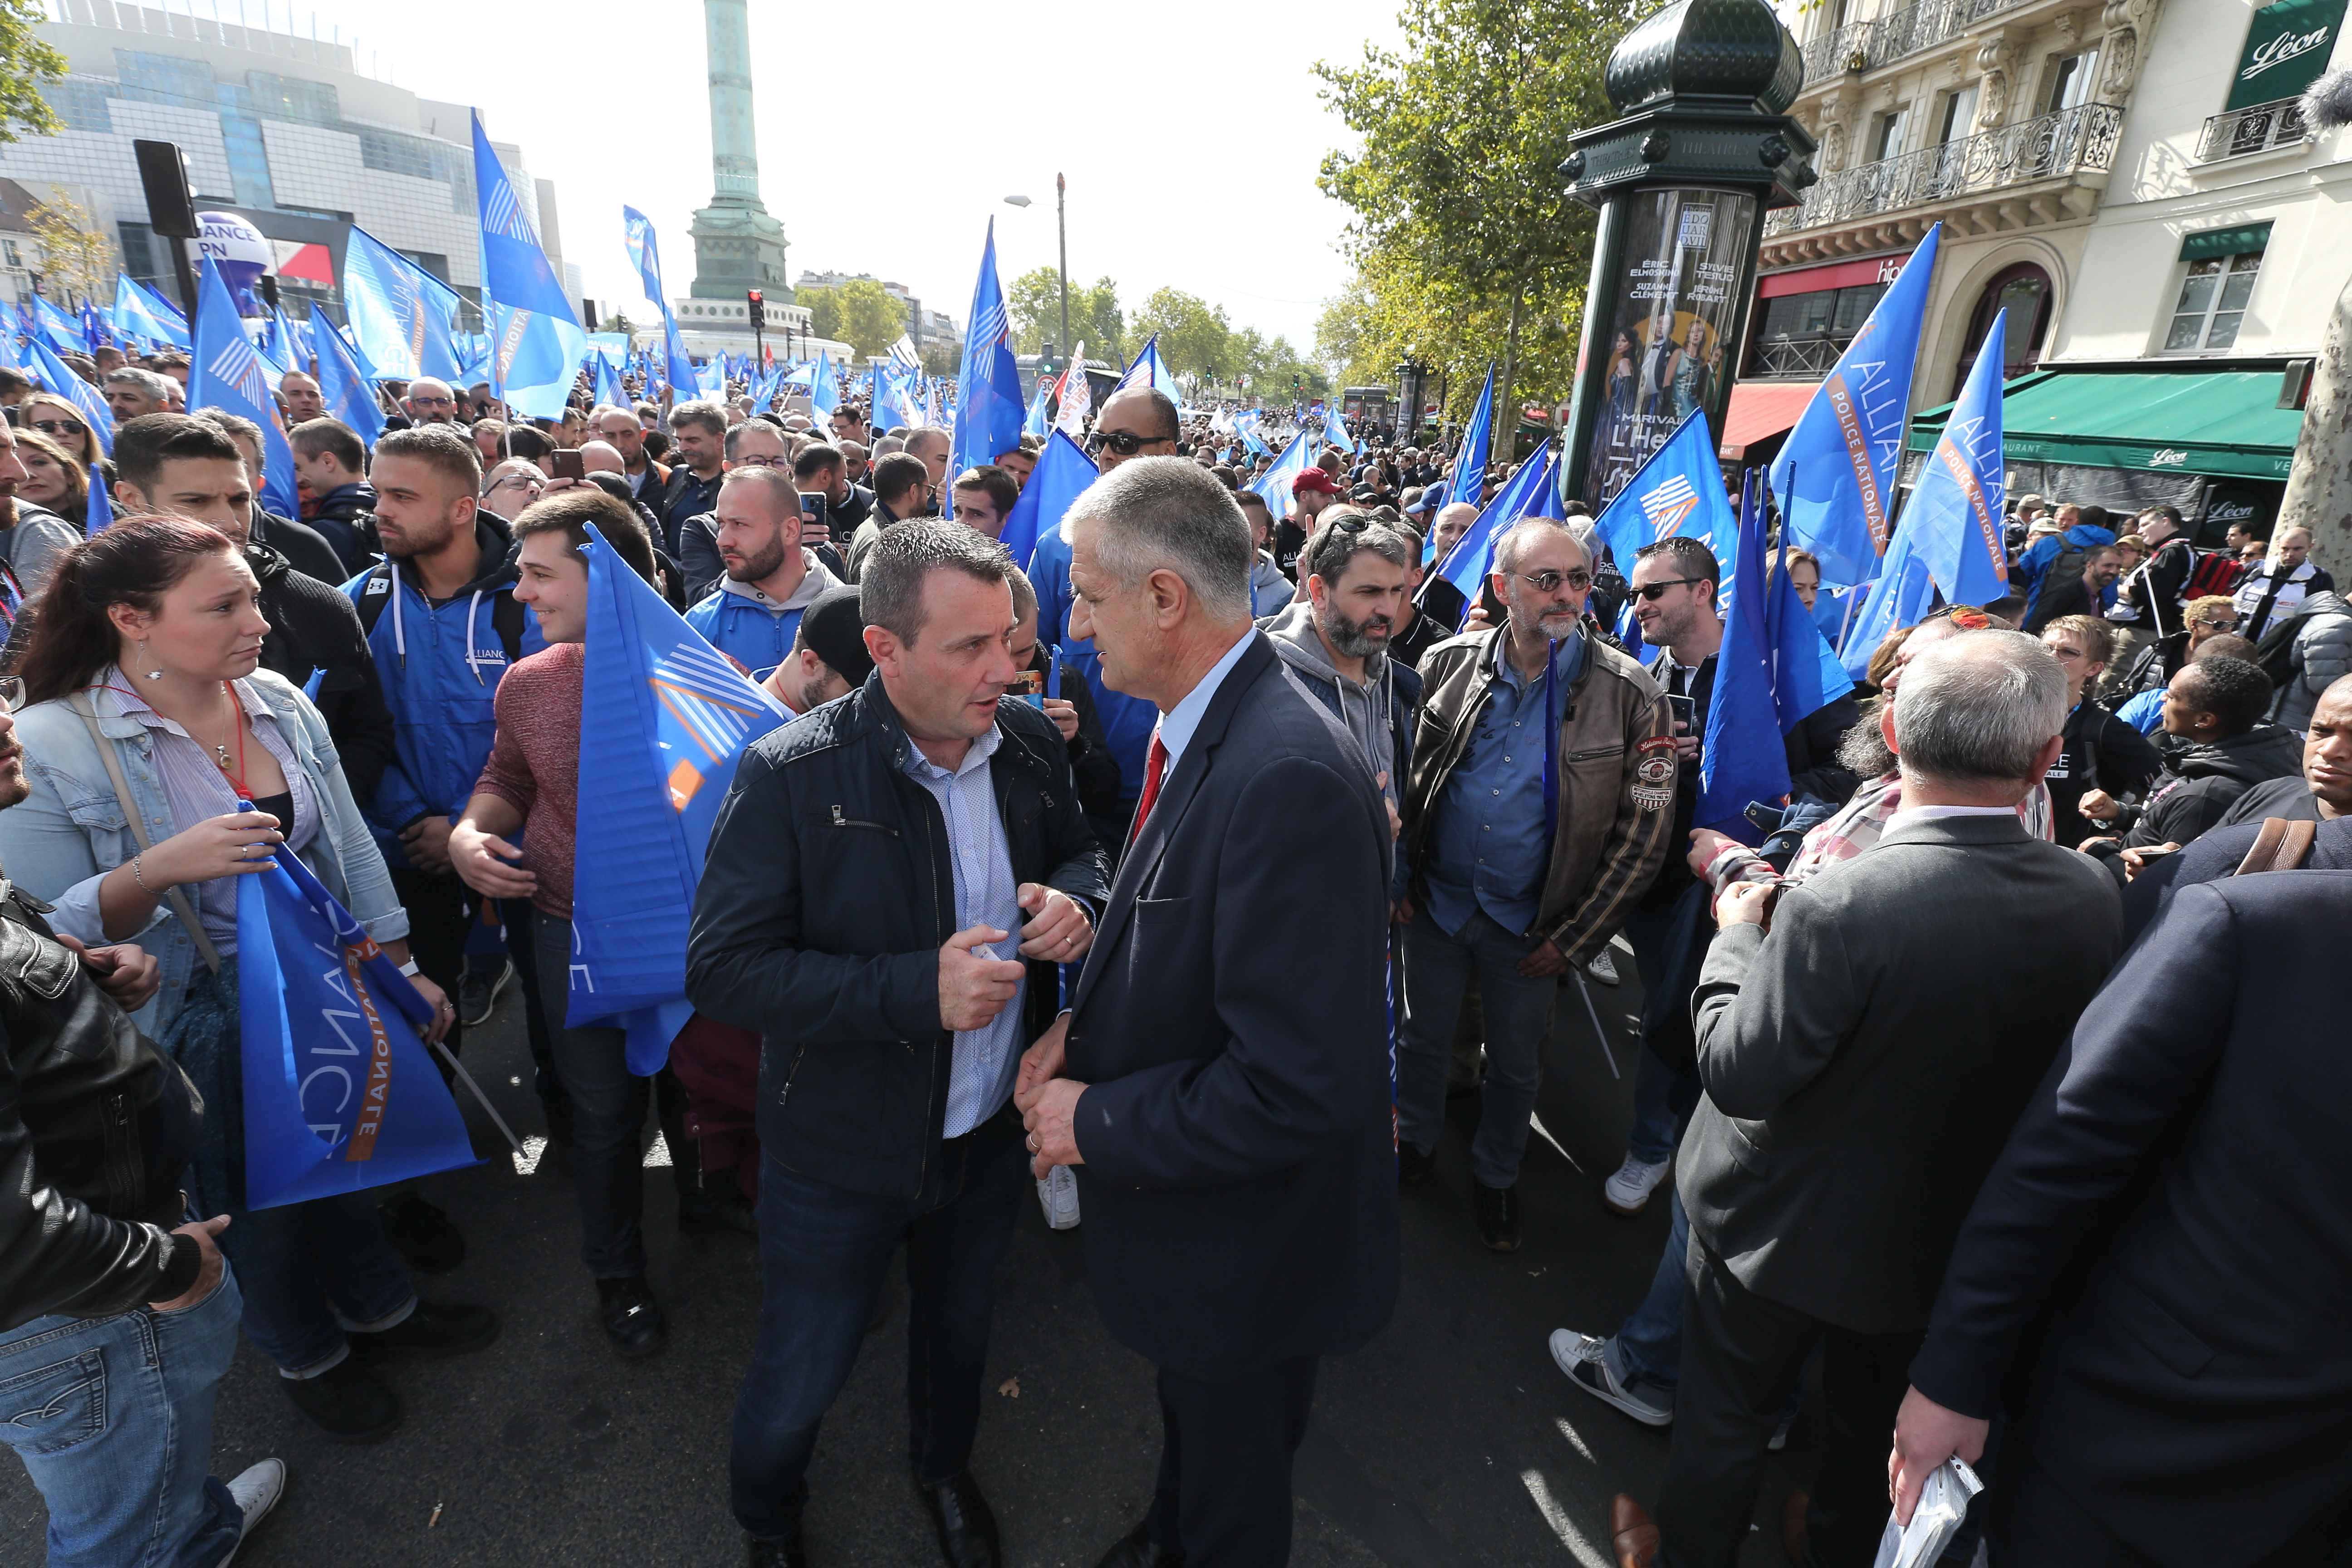 French Member of Parliament Jean Lassalle (C, red tie) speaks with Fabien Vanhemelryck (C), Secretary General of the Alliance-Police Nationale Union, during the ''Walk of Wrath'' of the Policemen in Paris (France) on October 2, 2019. At the call of the Nat